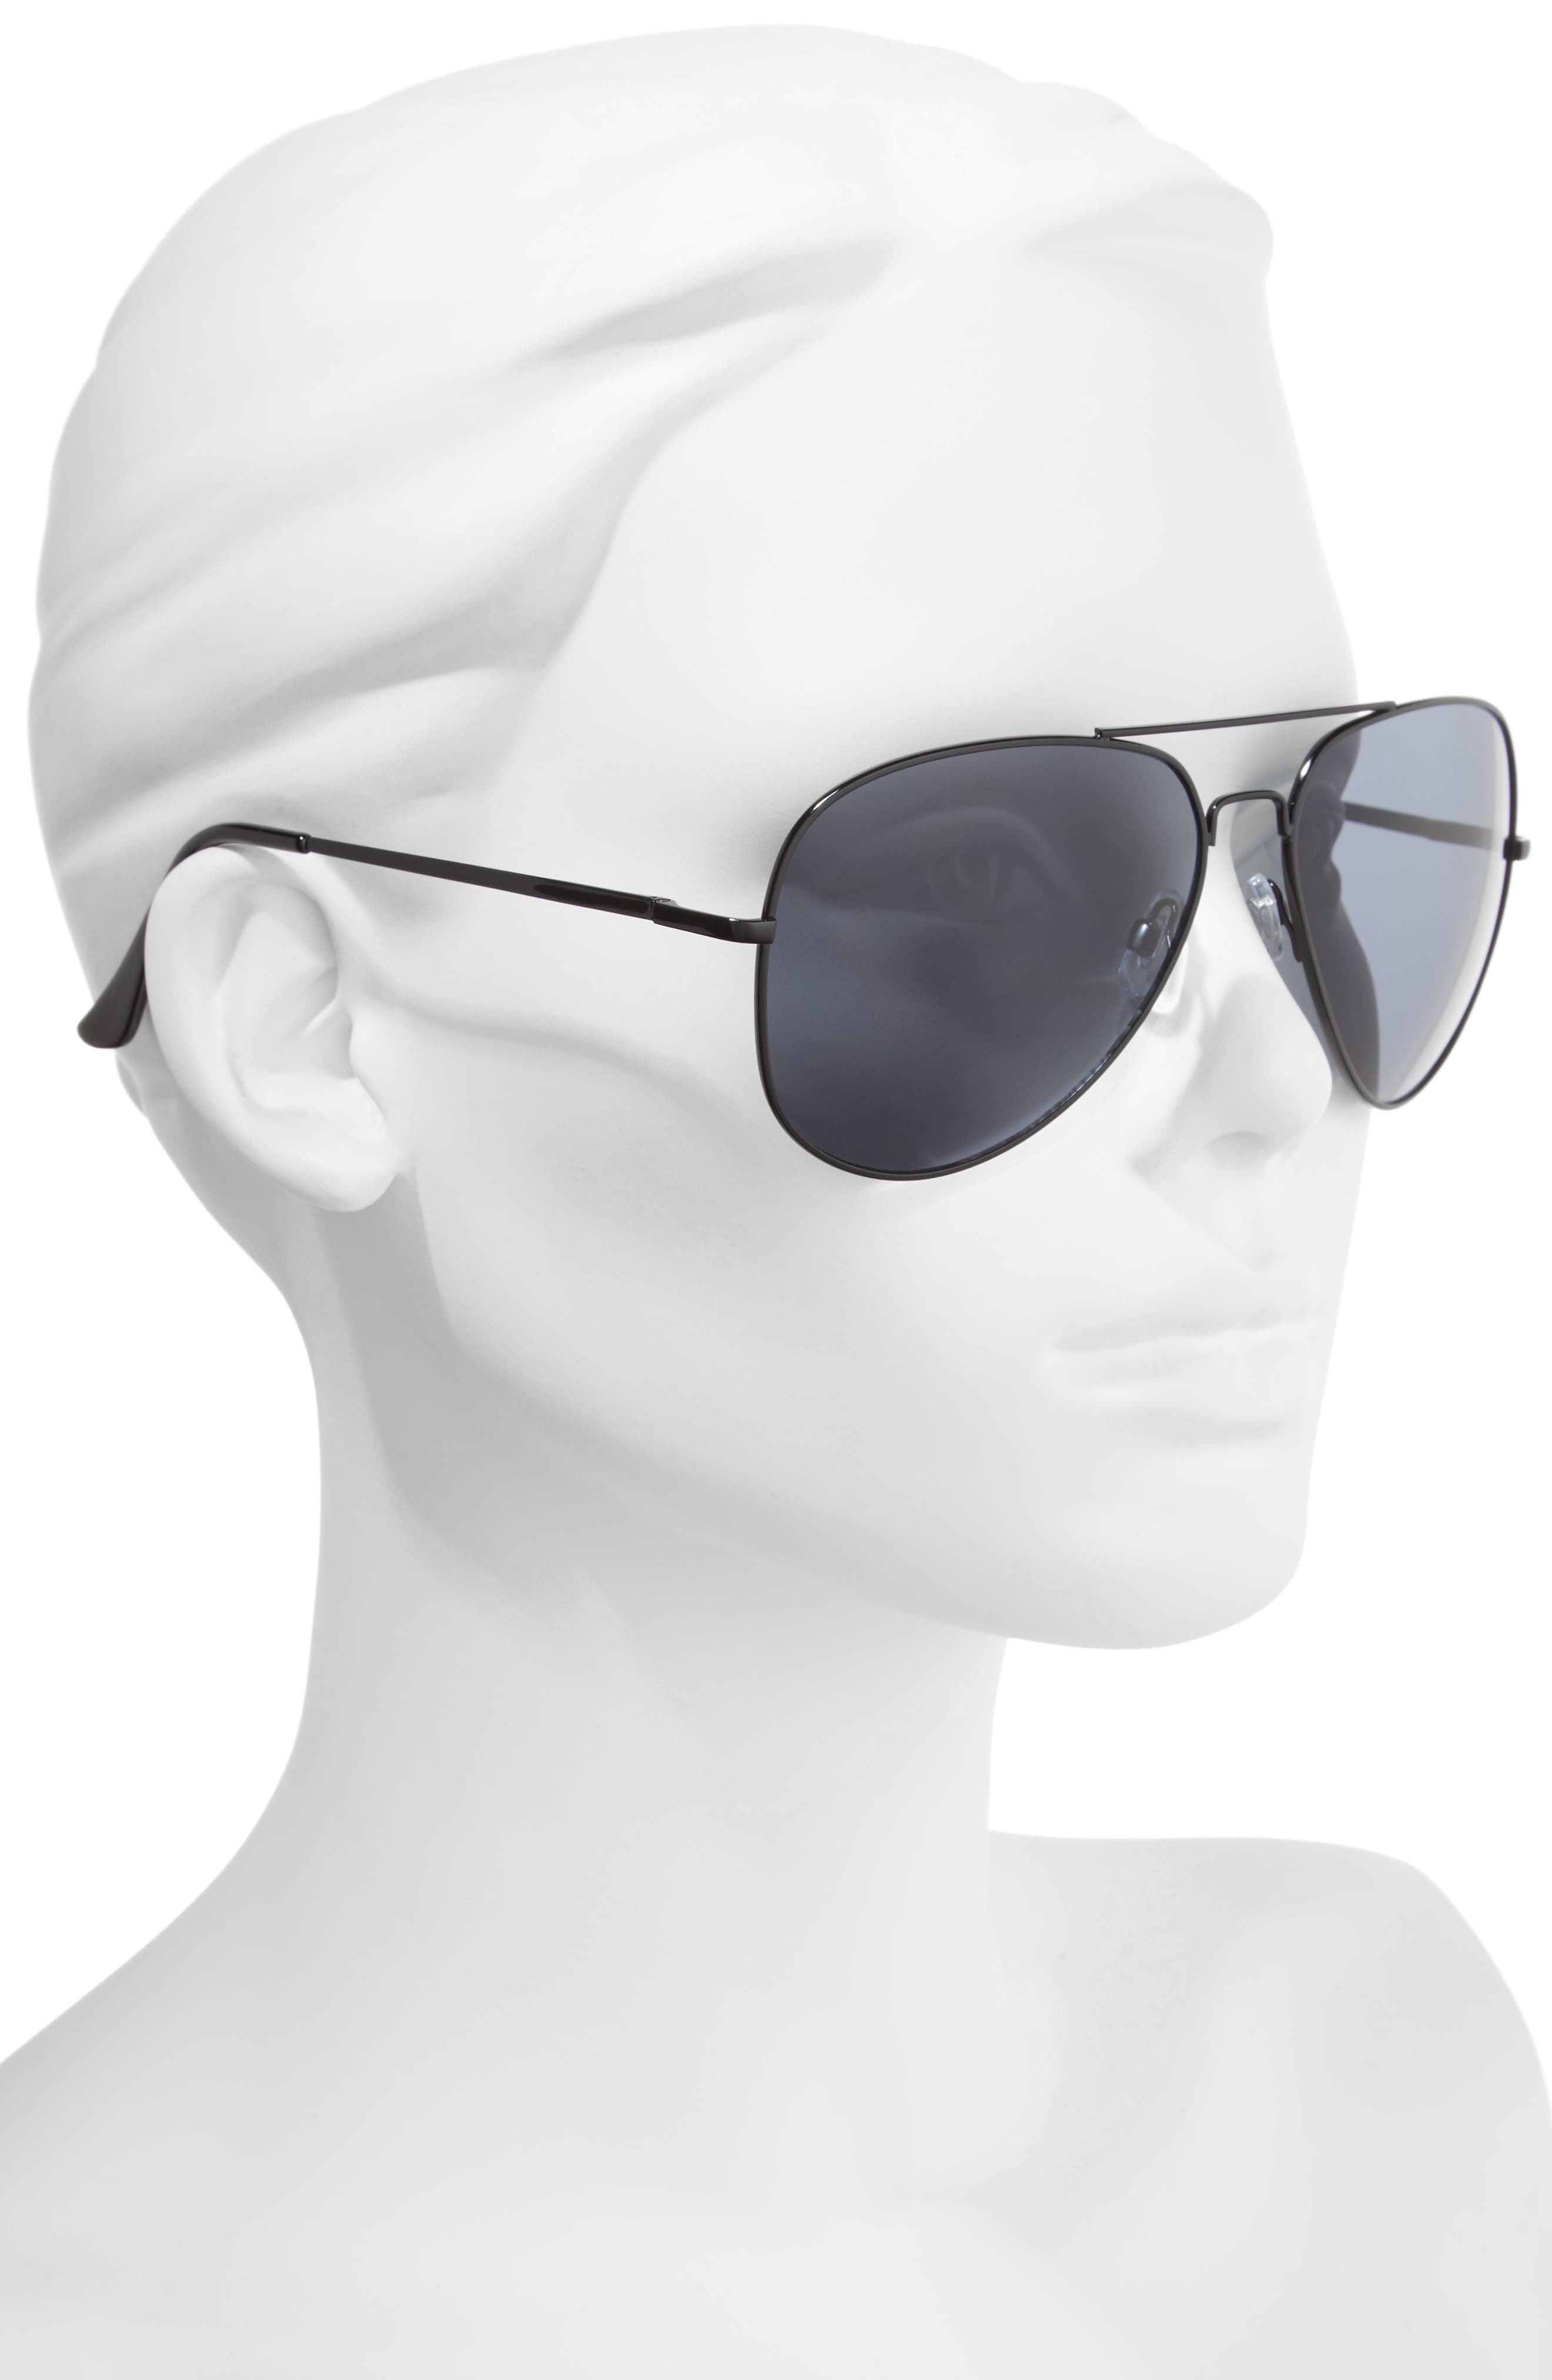 60mm Large Aviator Sunglasses,                             Alternate thumbnail 2, color,                             001